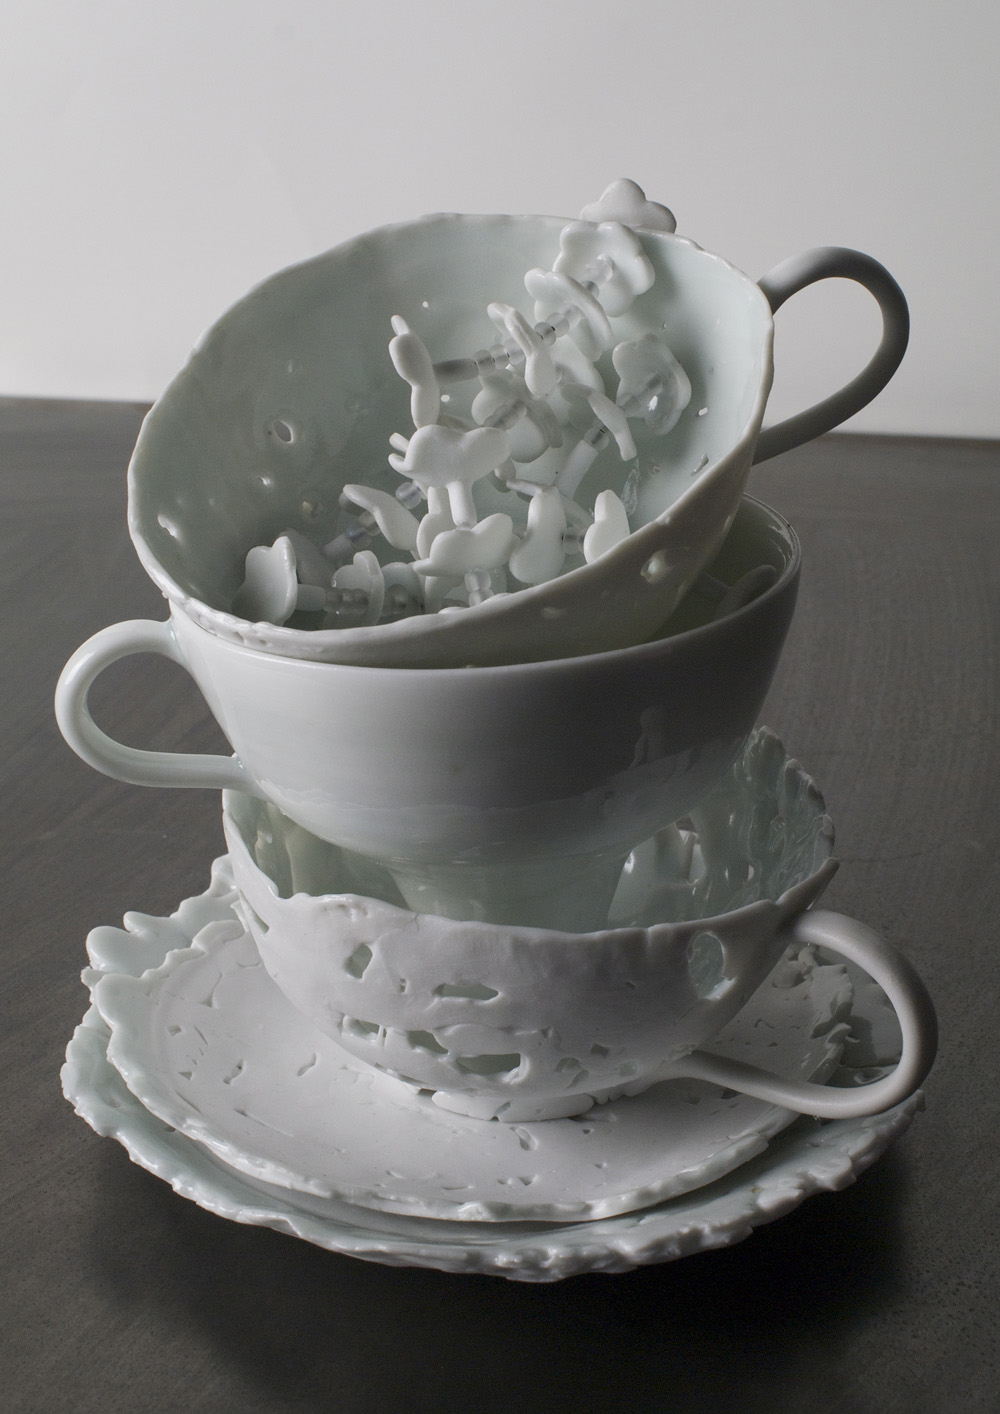 Lois Harbaugh   Stack , 2010  Cone 10 stoneware and cone porcelain  Collection of Sandra Westford